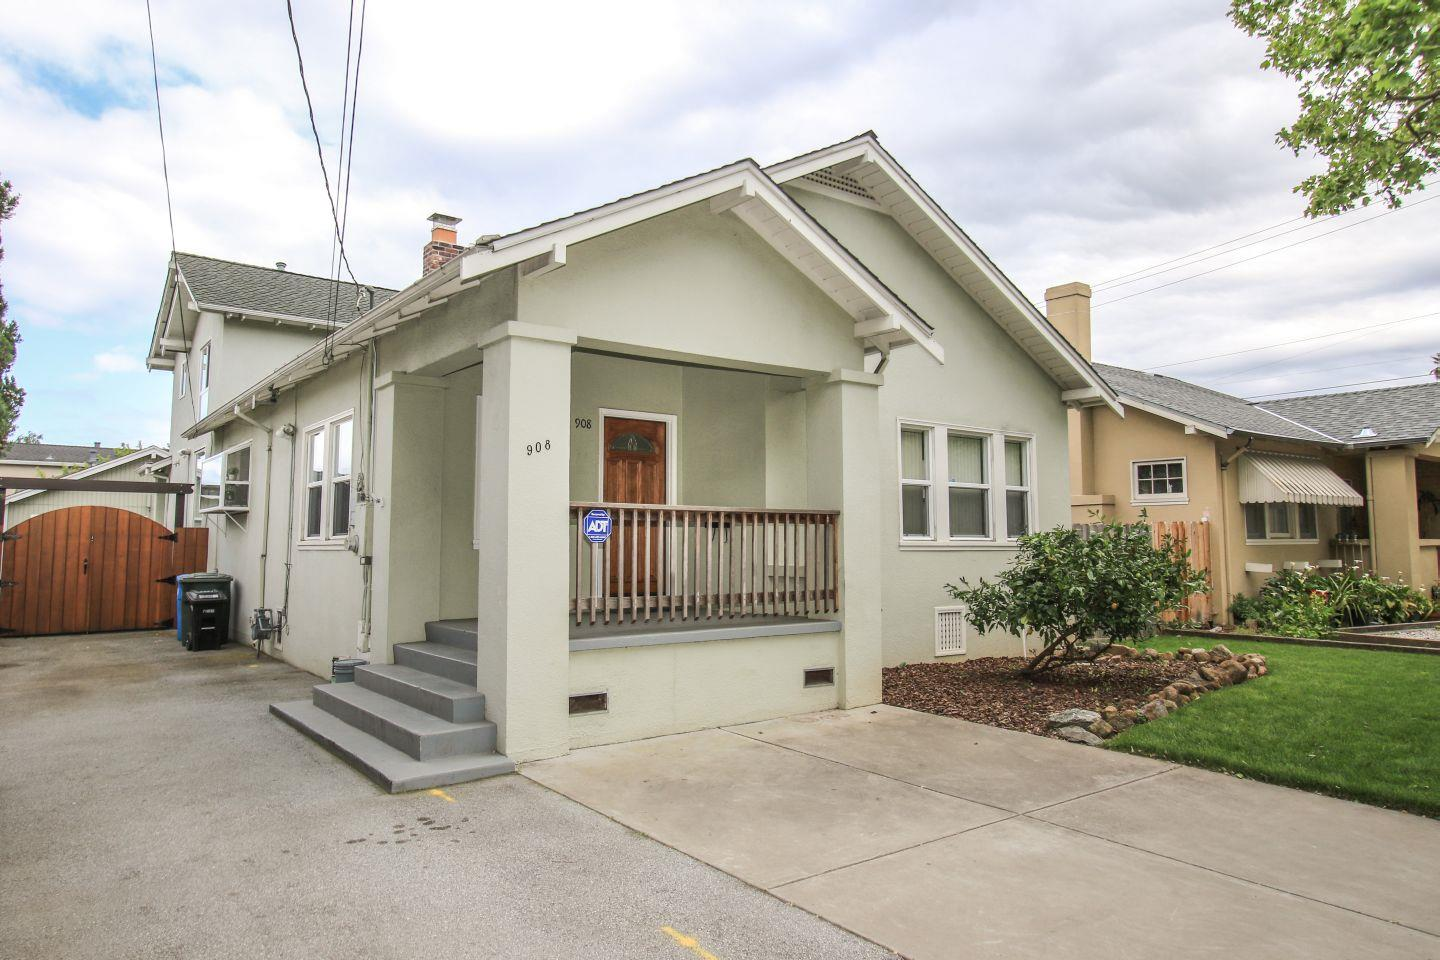 Additional photo for property listing at 908 E 5th Ave  SAN MATEO, CALIFORNIA 94402